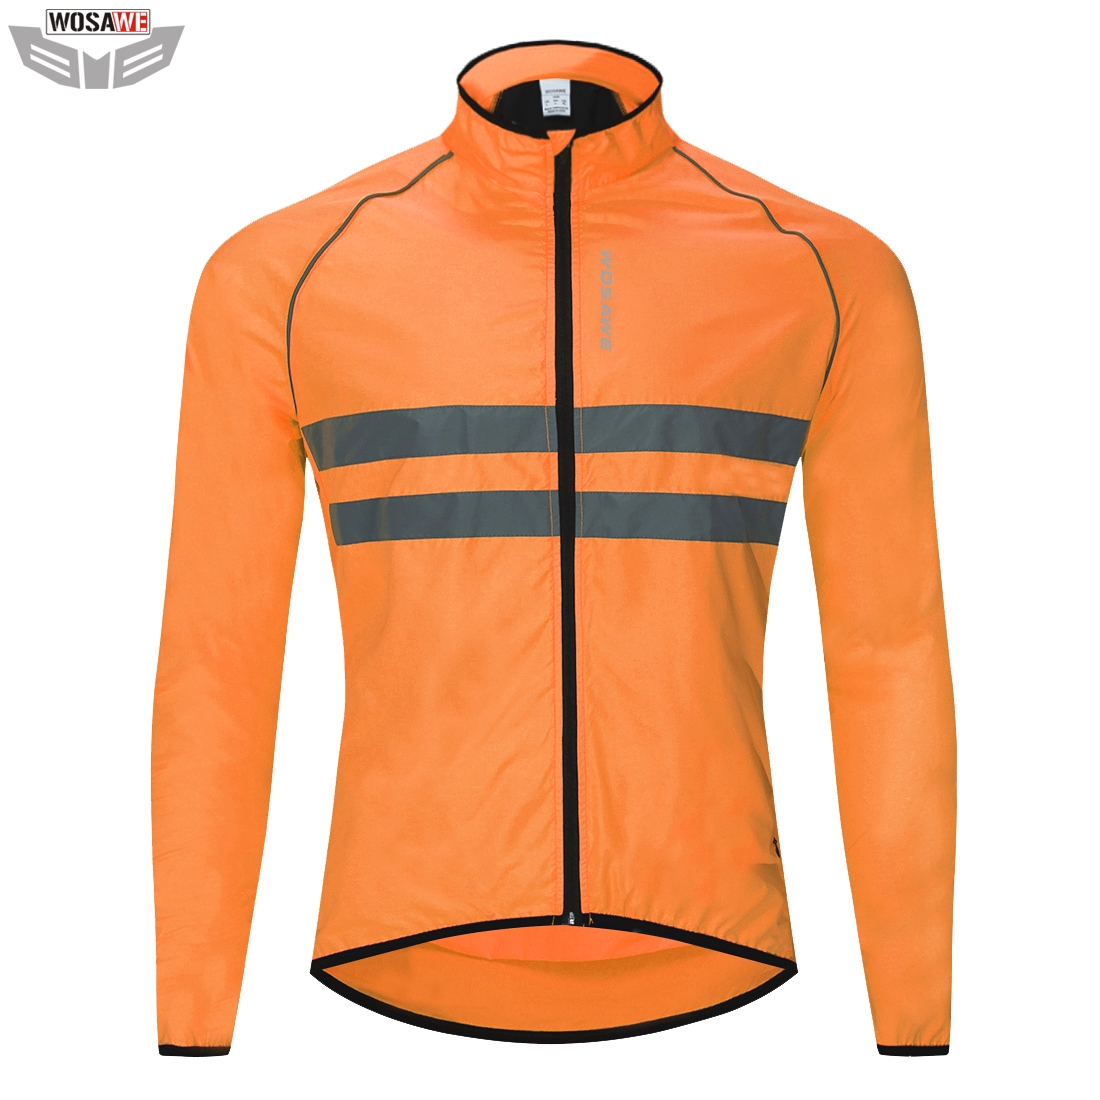 WOSAWE High Visibility Motorcycles Jacket Reflective Safety Vest Windproof off Road Motocross MOTO Protection